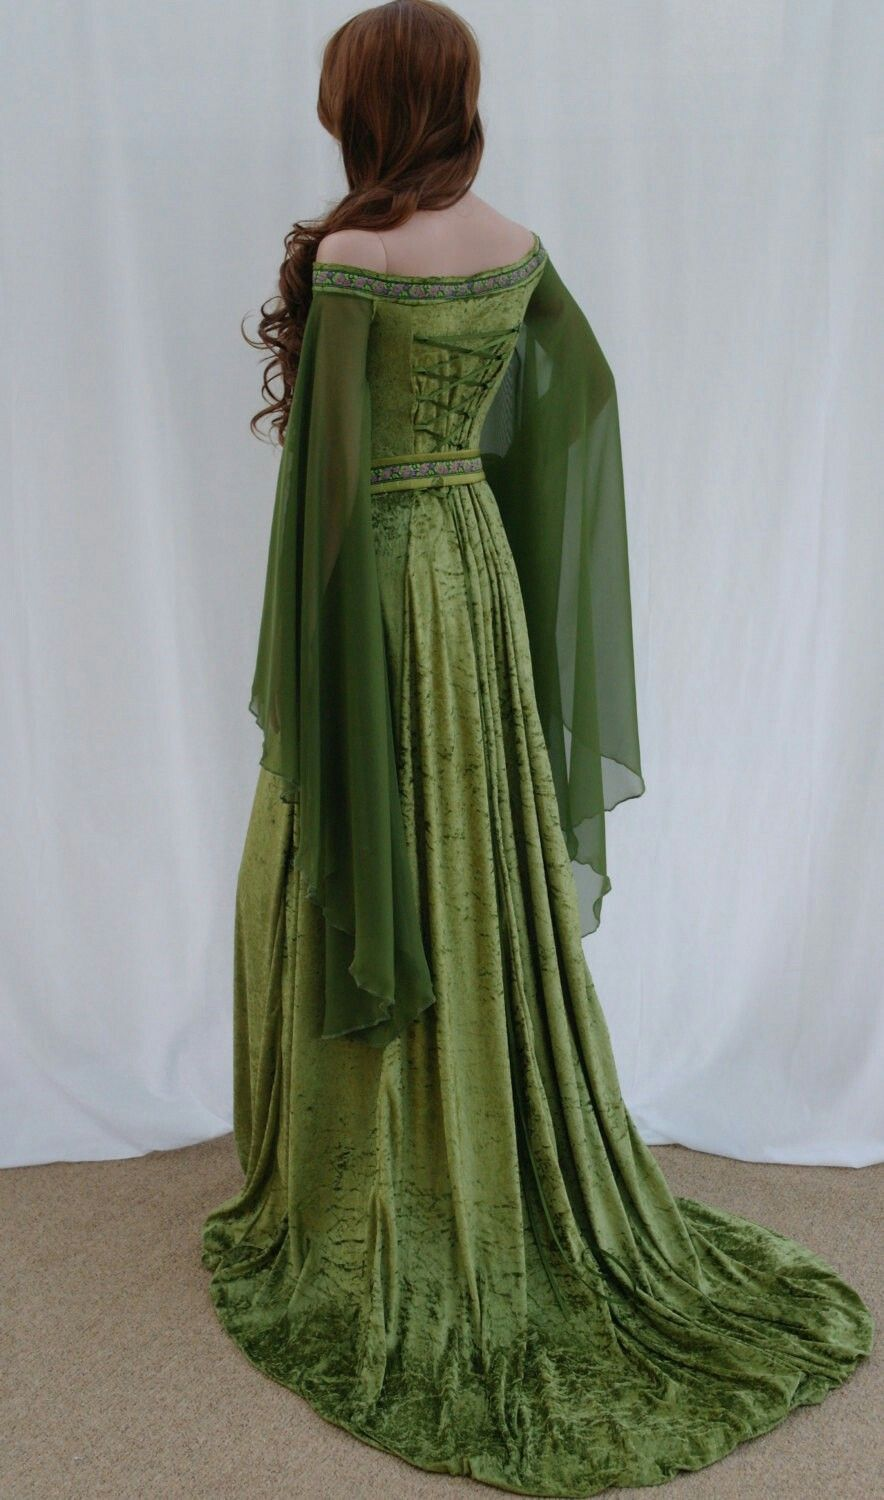 Cos green dress 2018  Pin by Sara Hardy on Cos Play in   Pinterest  Medieval fashion